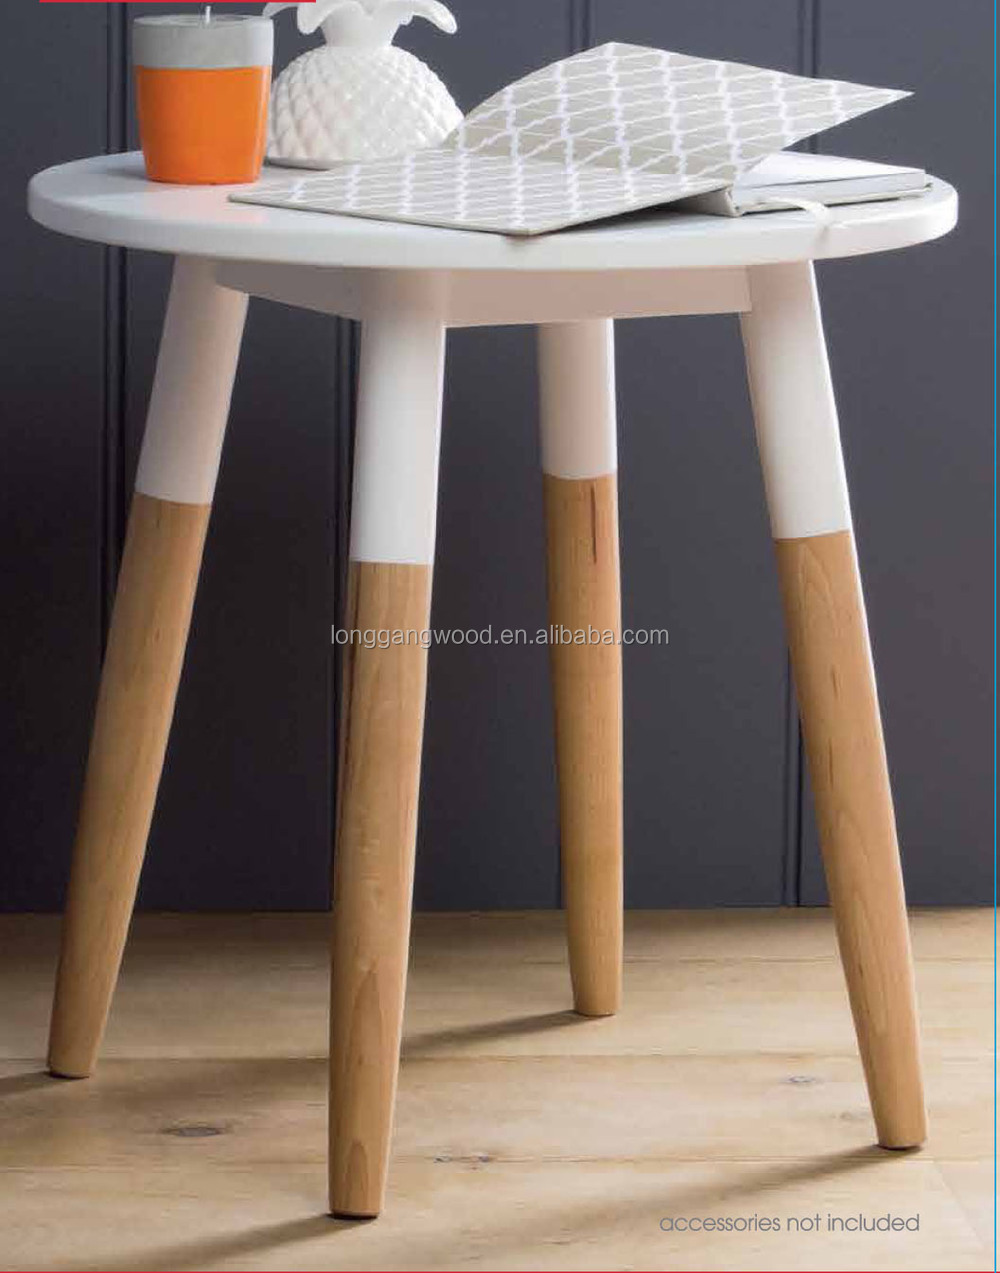 Delicieux Cheap Wooden Small Coffee Serving Table Design With Folding Legs   Buy  Alibaba Hot Selling High Quality Modern Design Portable Fold Wooden,Modern  Living ...